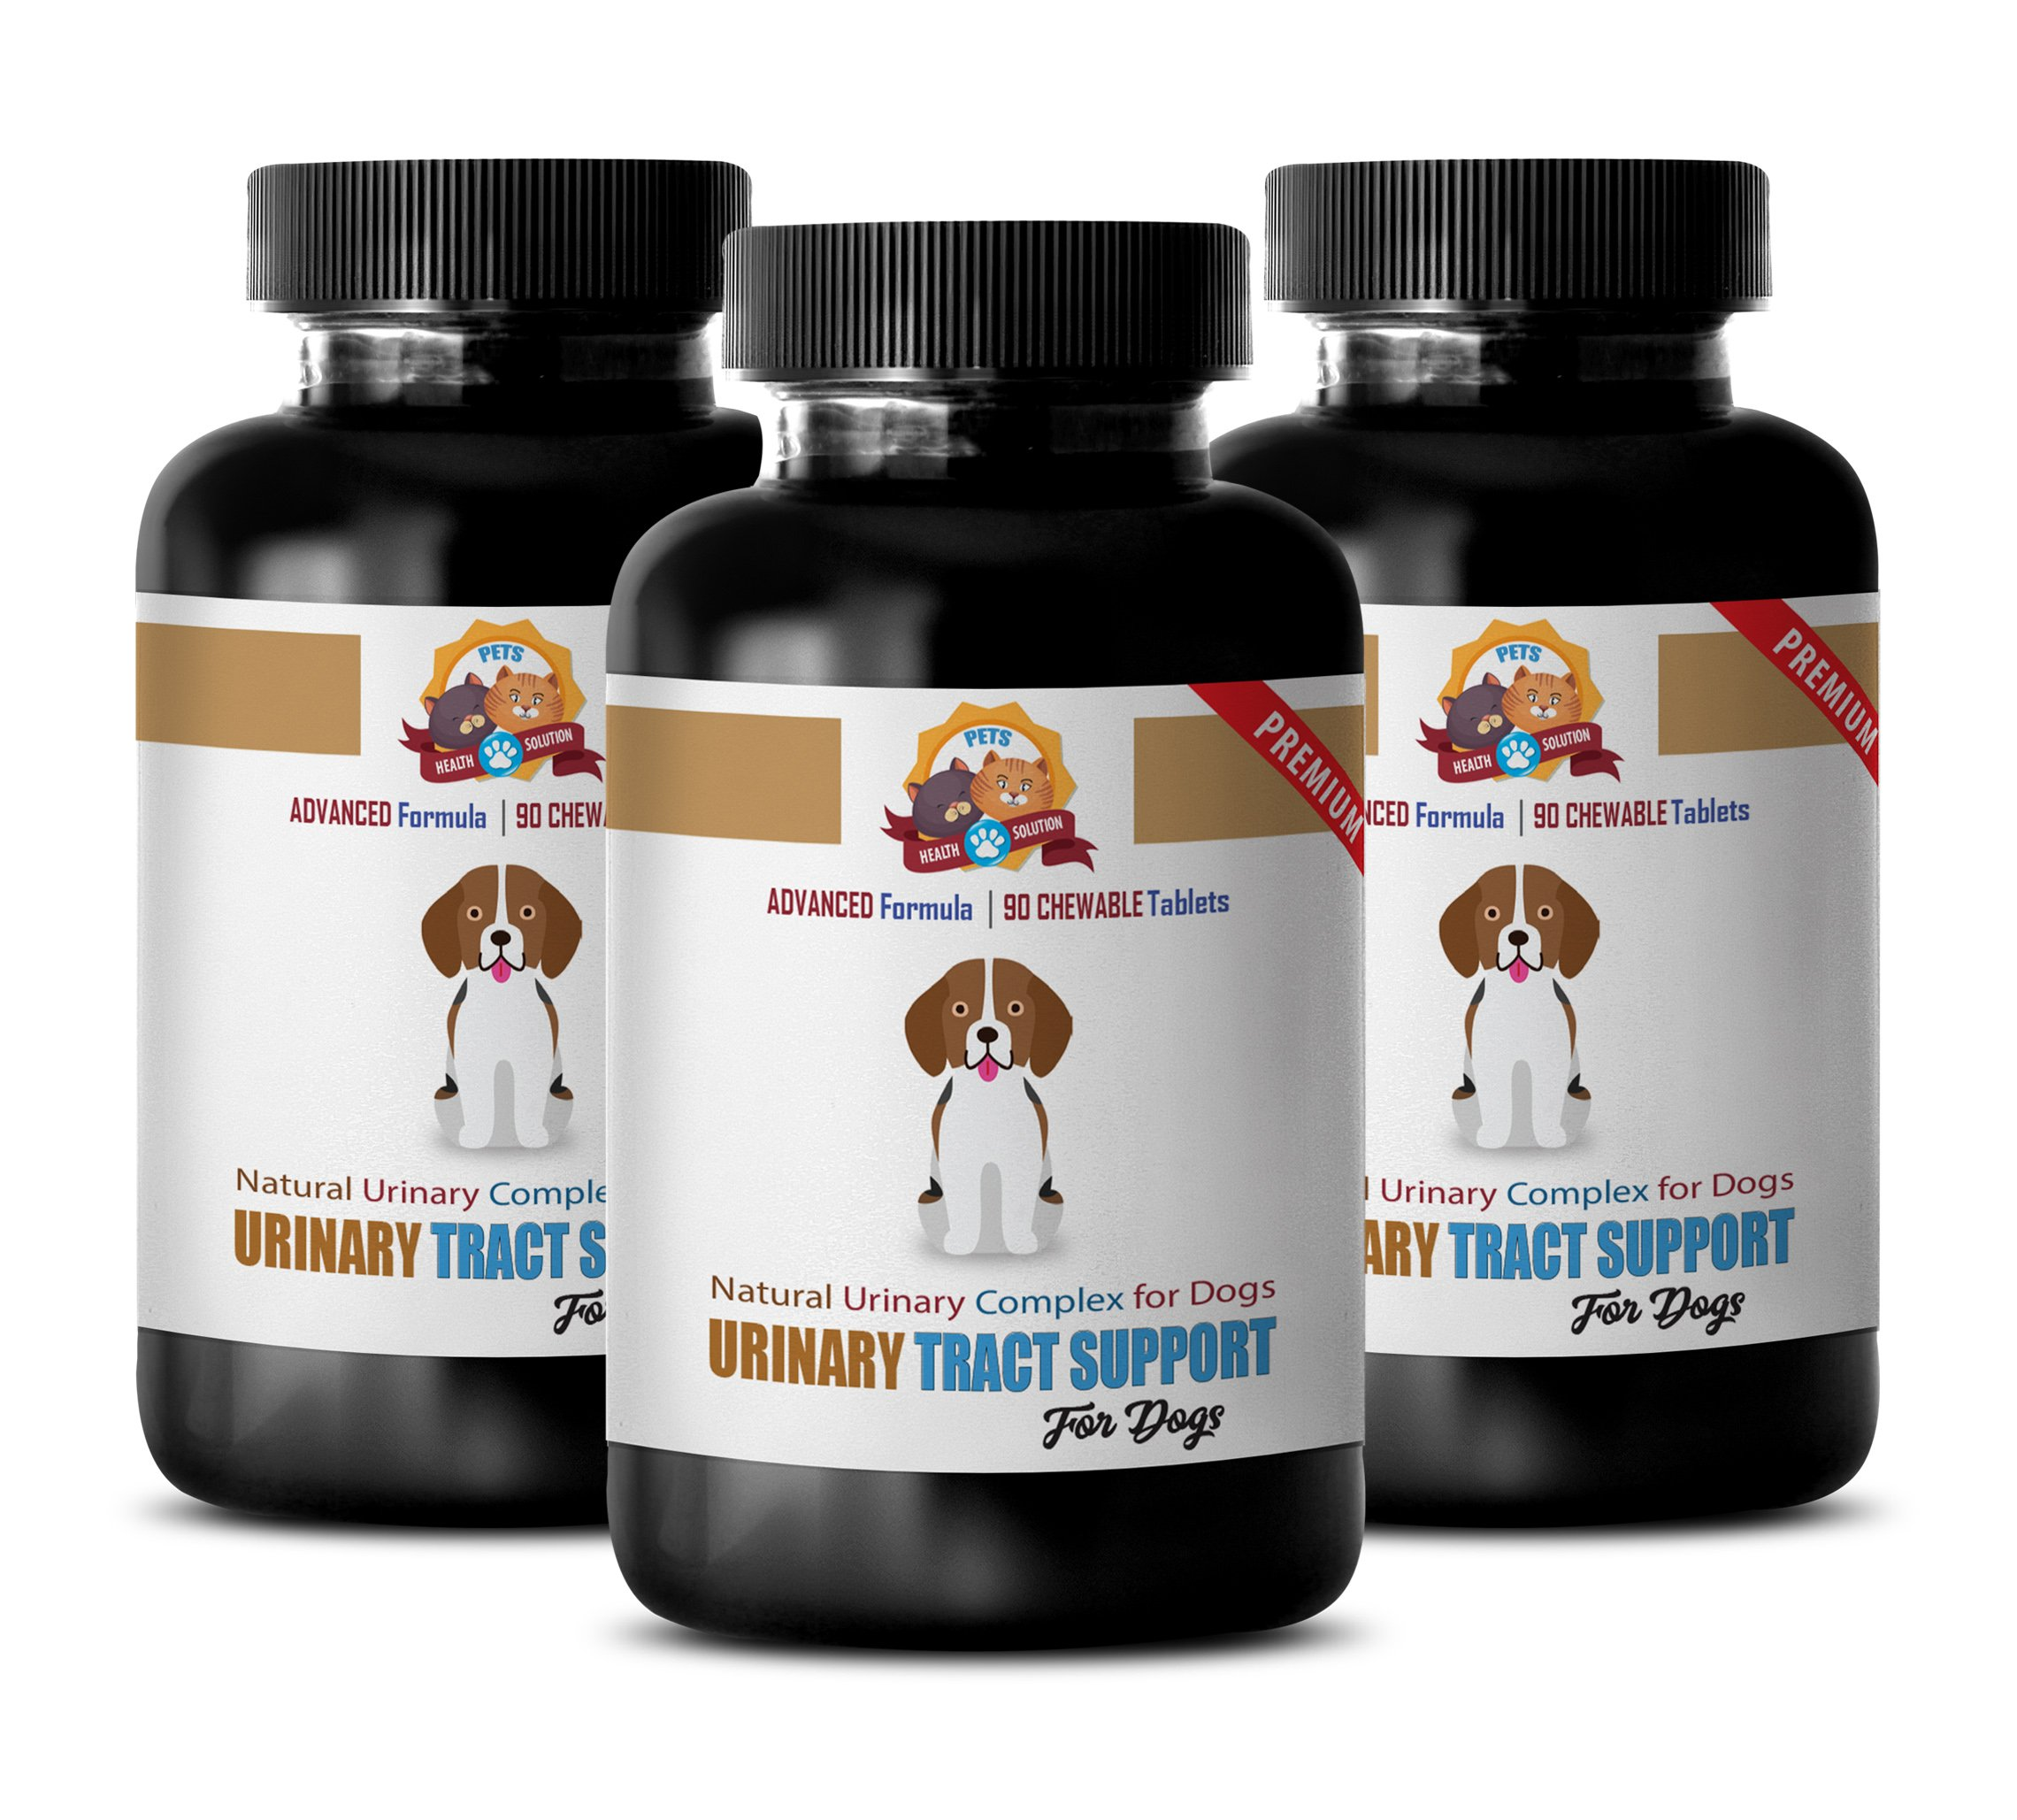 PETS HEALTH SOLUTION dog urinary diet - NATURAL URINARY TRACT SUPPORT - DOG TREATS - PREMIUM ADVANCED COMPLEX - dog uti supplement - 270 Treats (3 Bottle) by PETS HEALTH SOLUTION